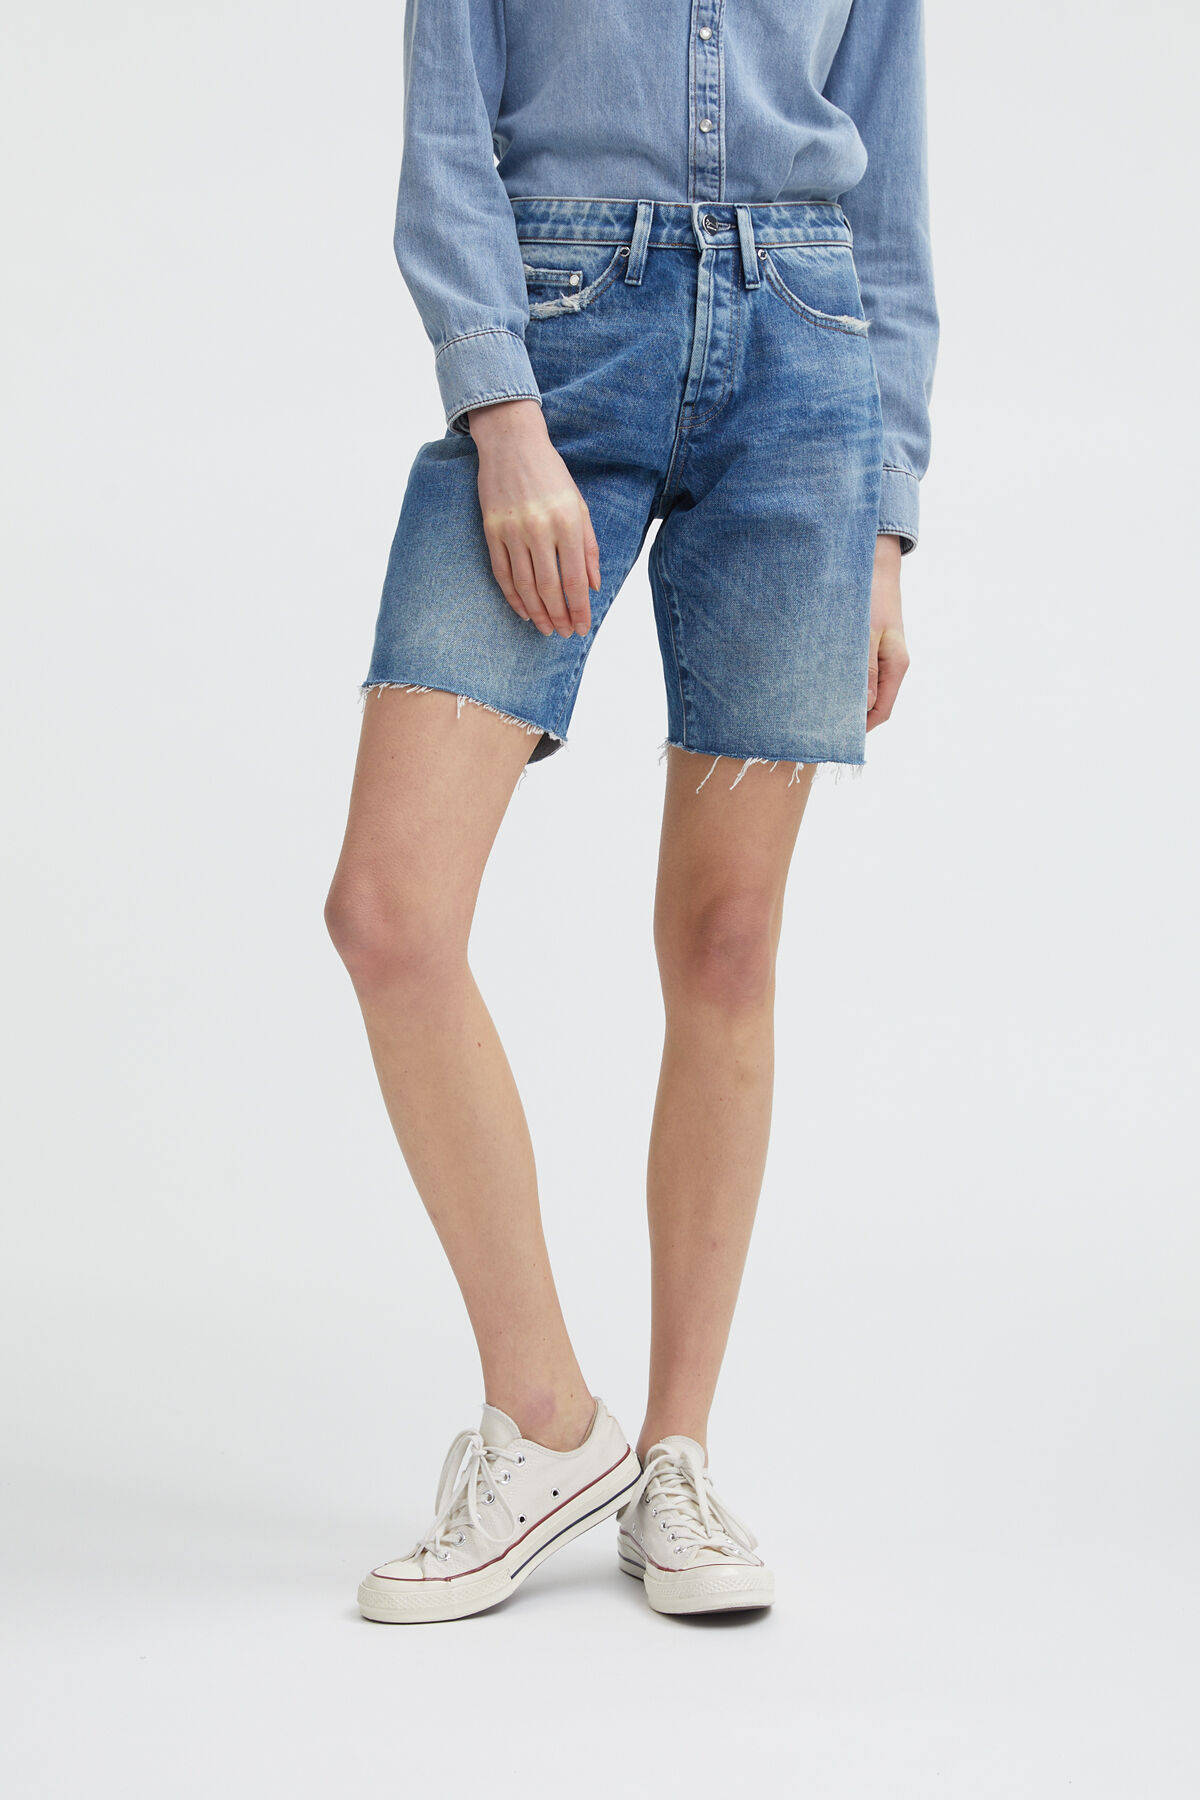 MELROSE SHORT LONGER INSEAM Cut off Hem